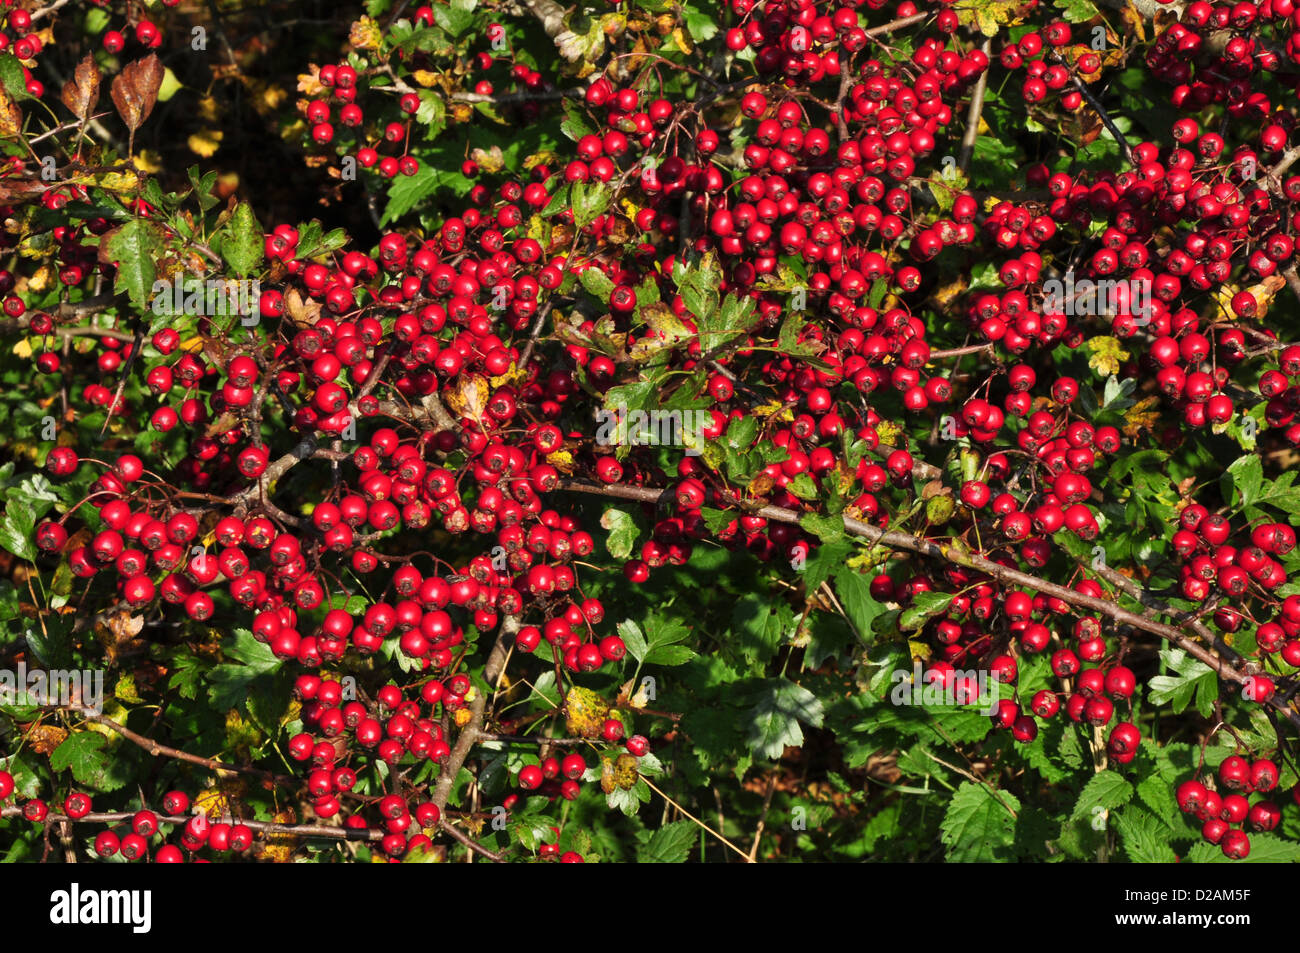 Red hawthorn berries in Autumn UK - Stock Image